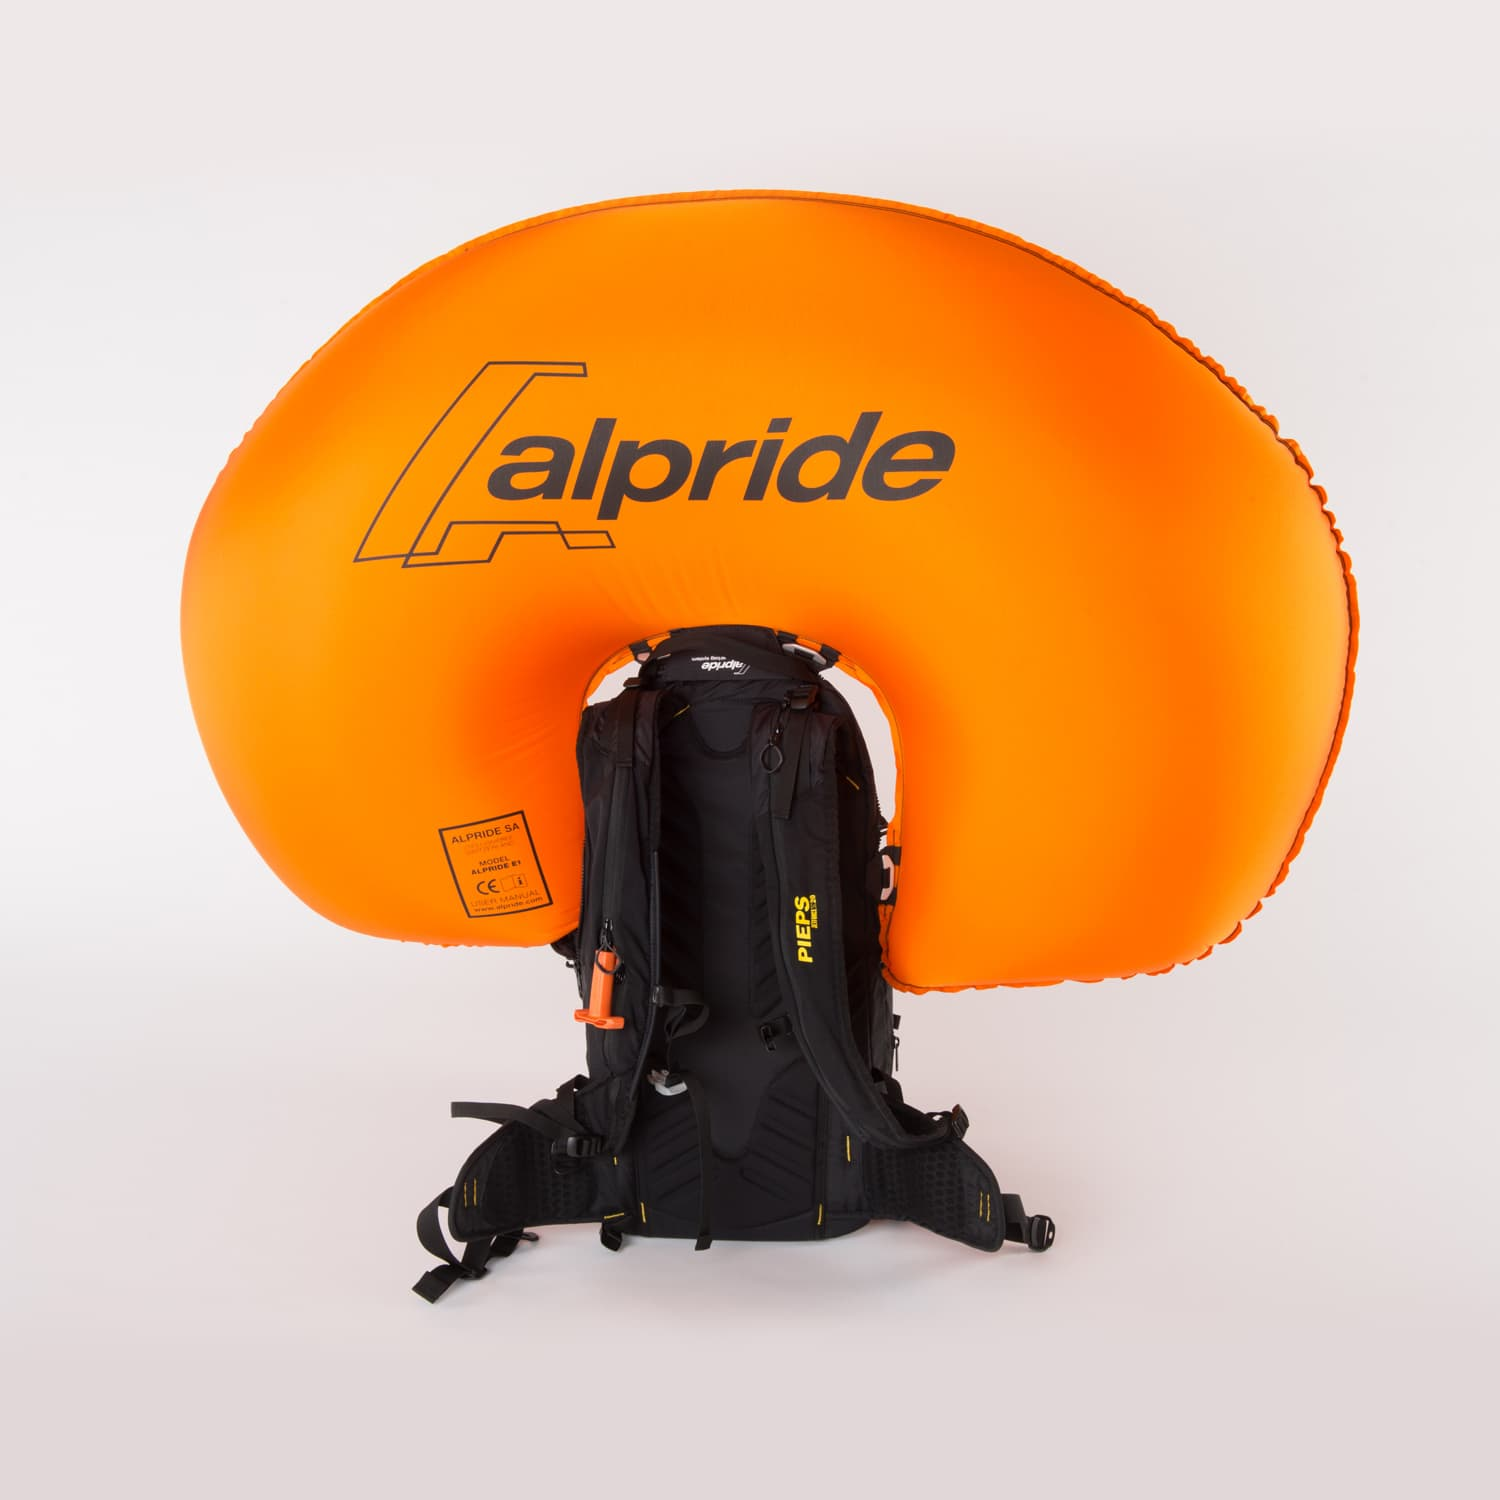 Polaris Avalanche Airbag